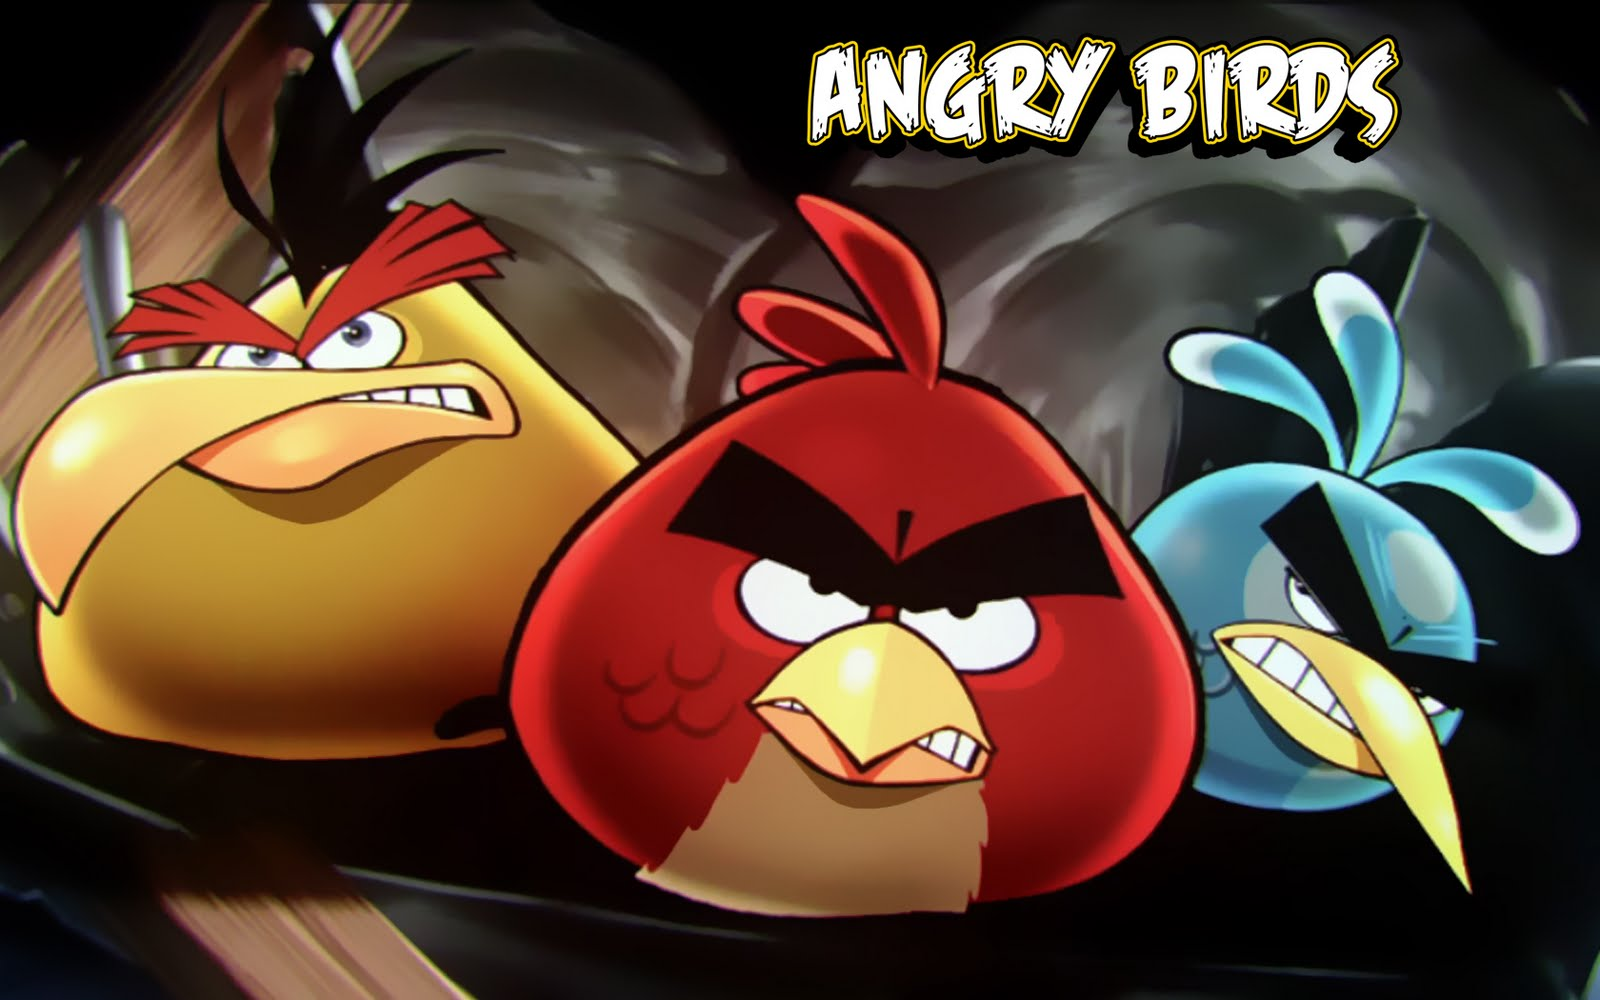 ANGRY BIRDS CUTE HD WALLPAPERS HD WALLPAPERS 1600x1000